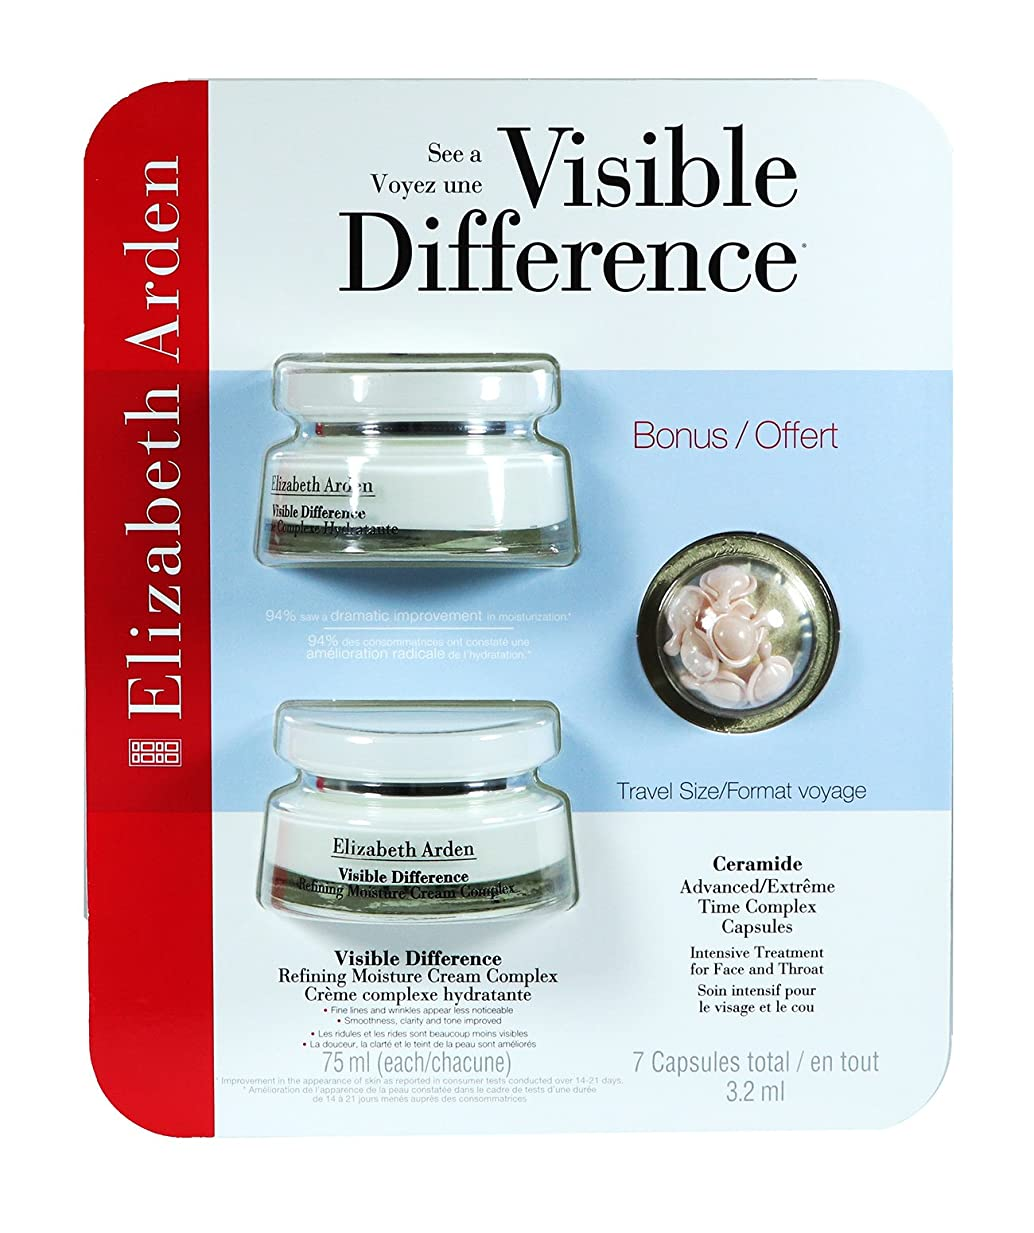 アーティキュレーション否認する蒸気Elizabeth Arden Visible Difference Refining Moisture Cream Complex Double Value Pack (2 x 2.5oz) With BONUS Travel Size Ceramide Advanced/Extreme Time Complex Capsules